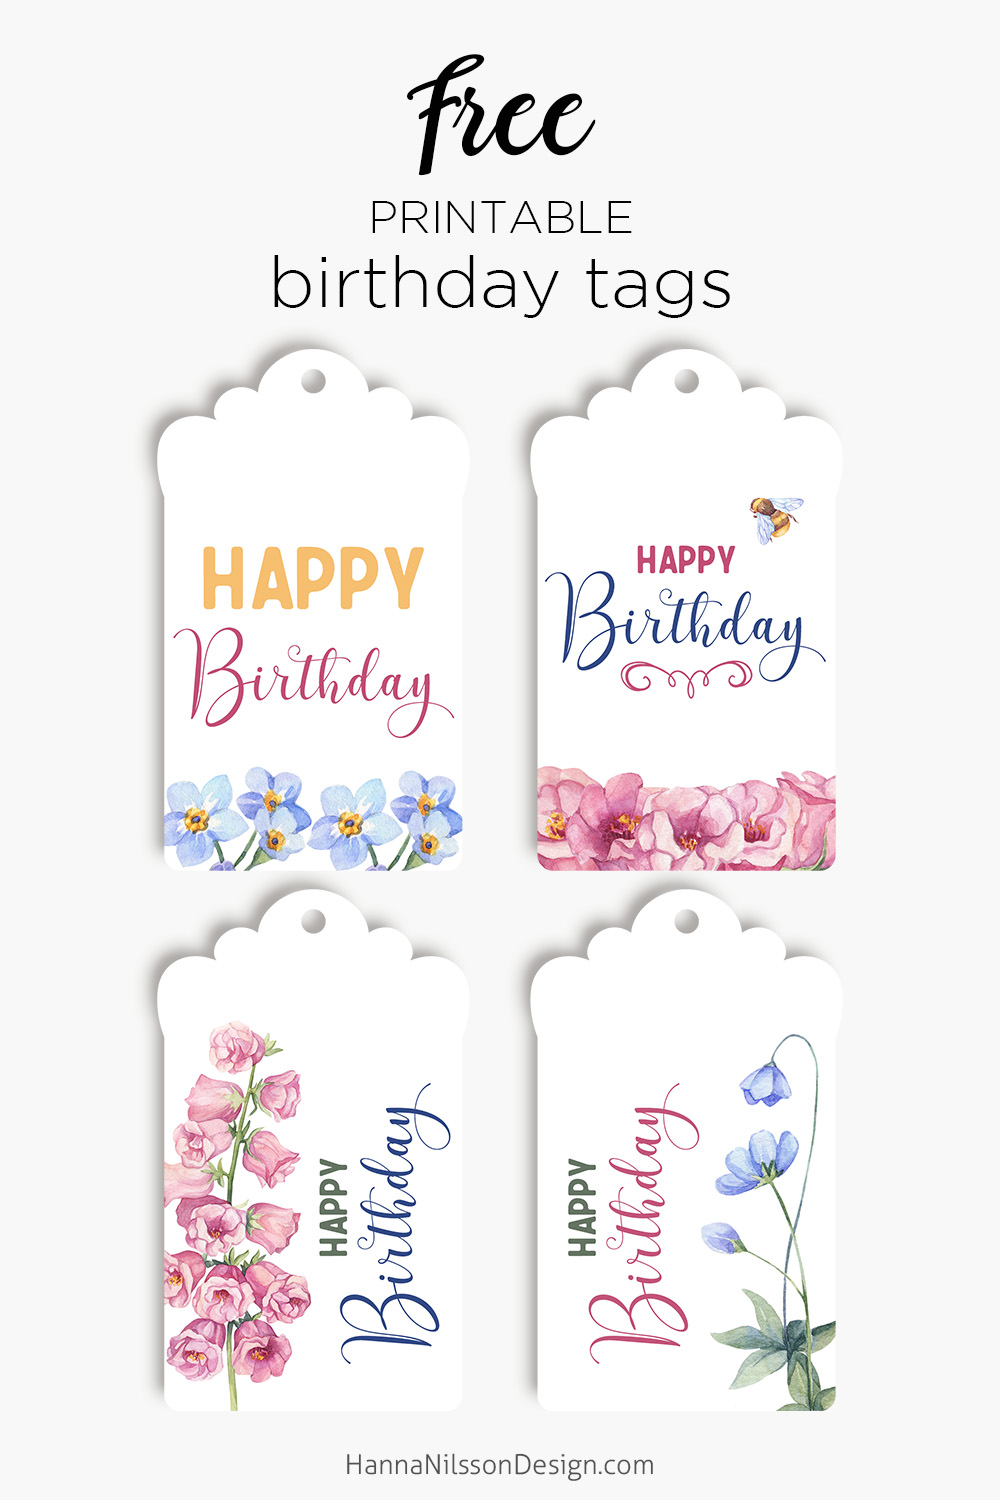 photo relating to Free Printable Birthday Tags identify Birthday tags playing cards Cost-free floral printables Hanna